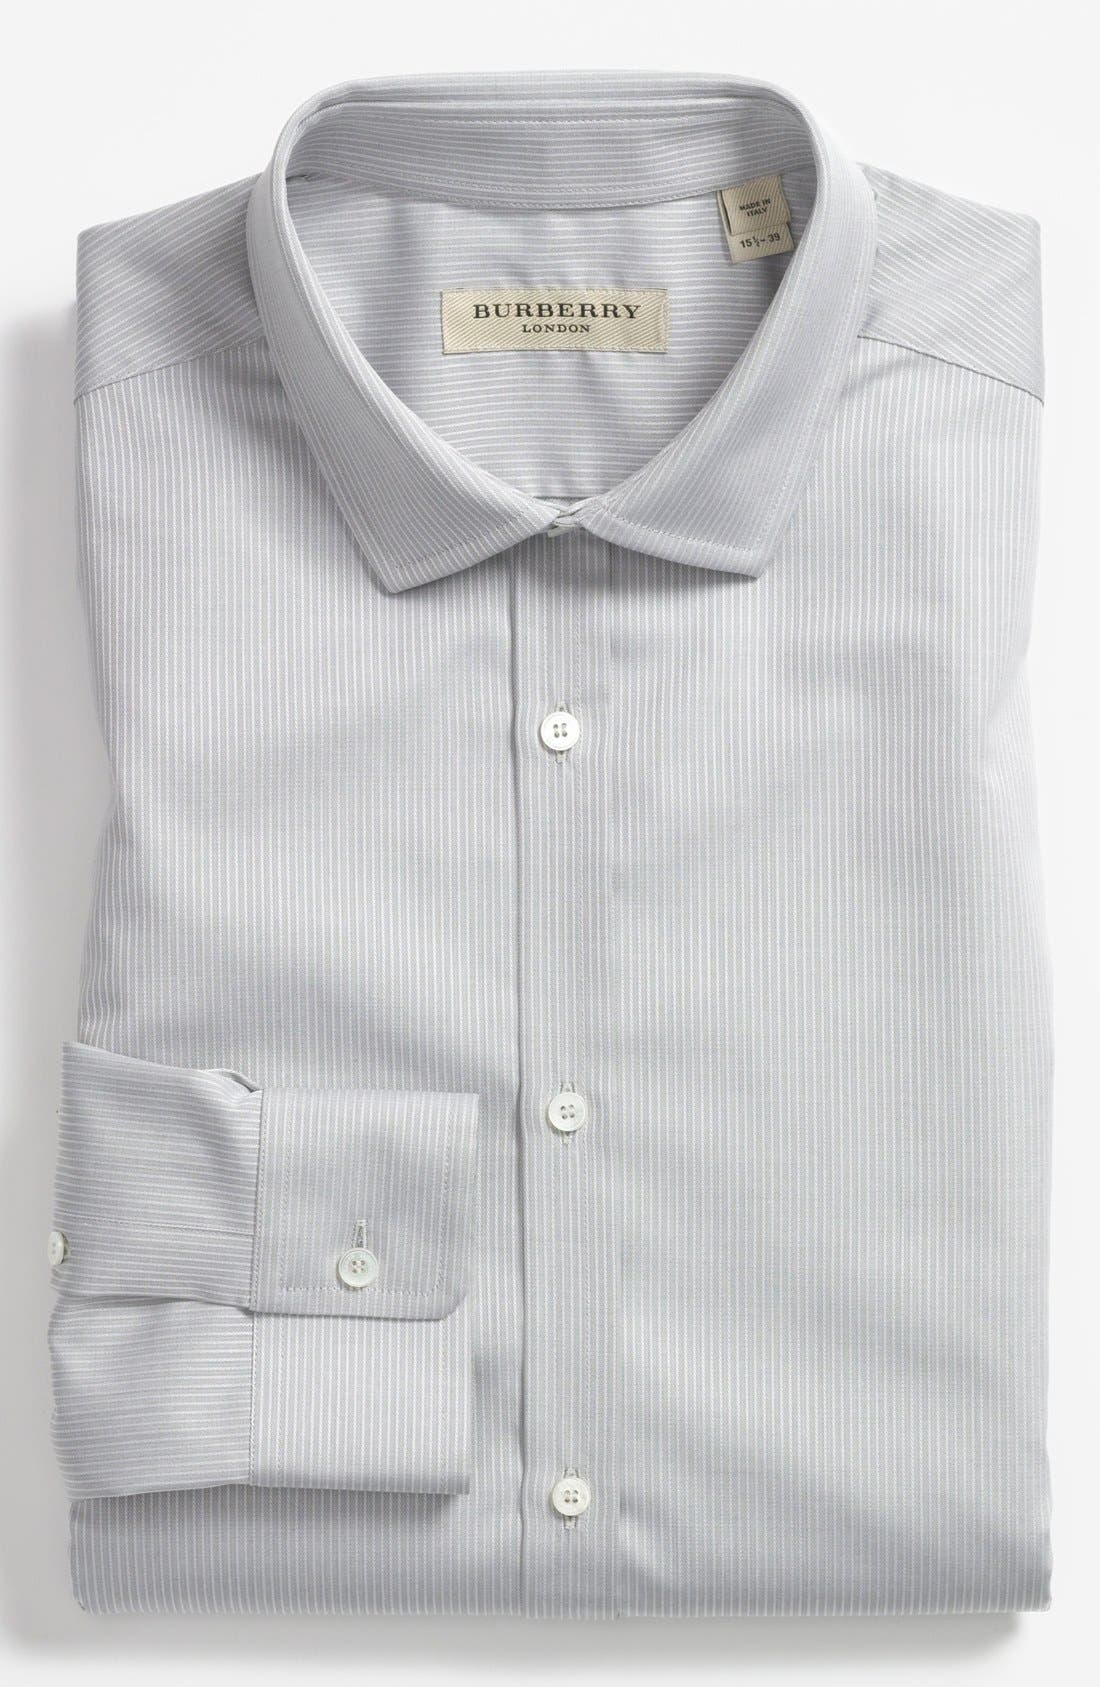 Main Image - Burberry London Stripe Tailored Fit Dress Shirt